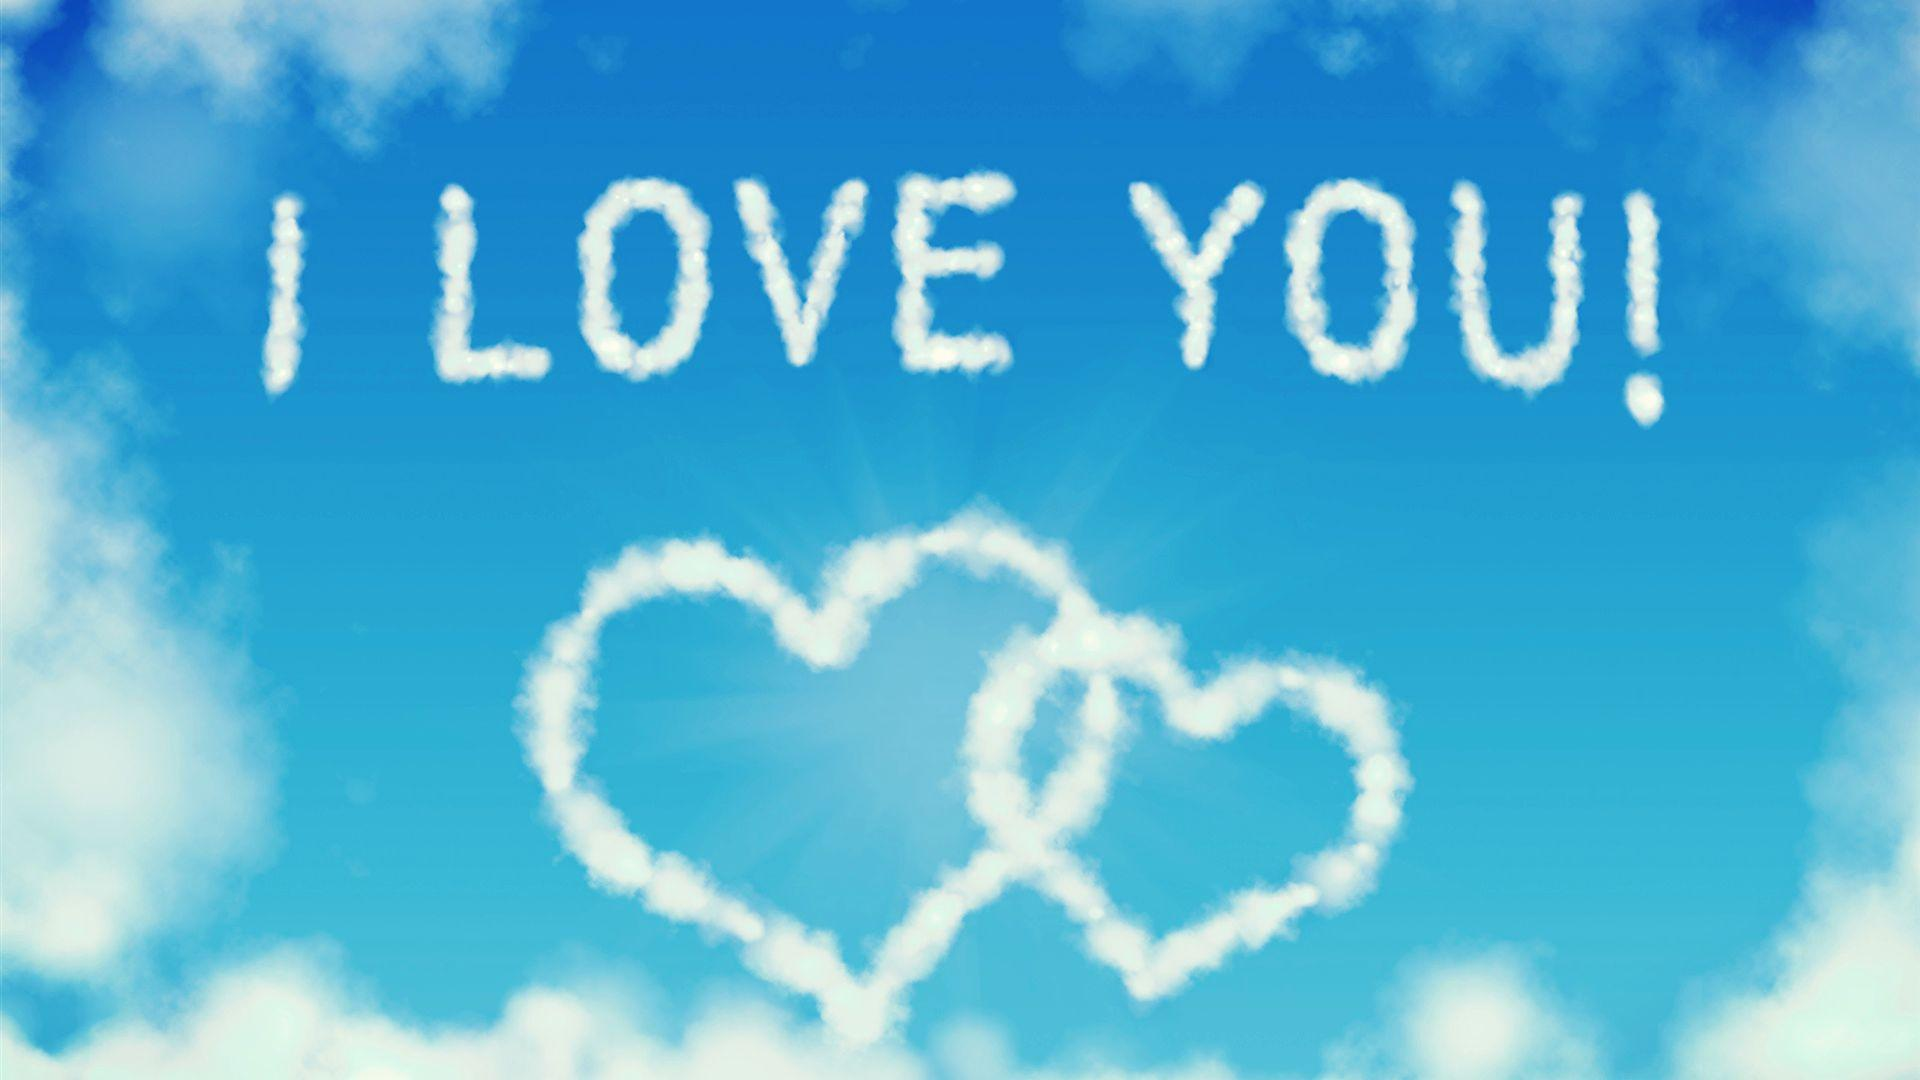 L Love You Wallpapers : I Love You Wallpapers - Wallpaper cave